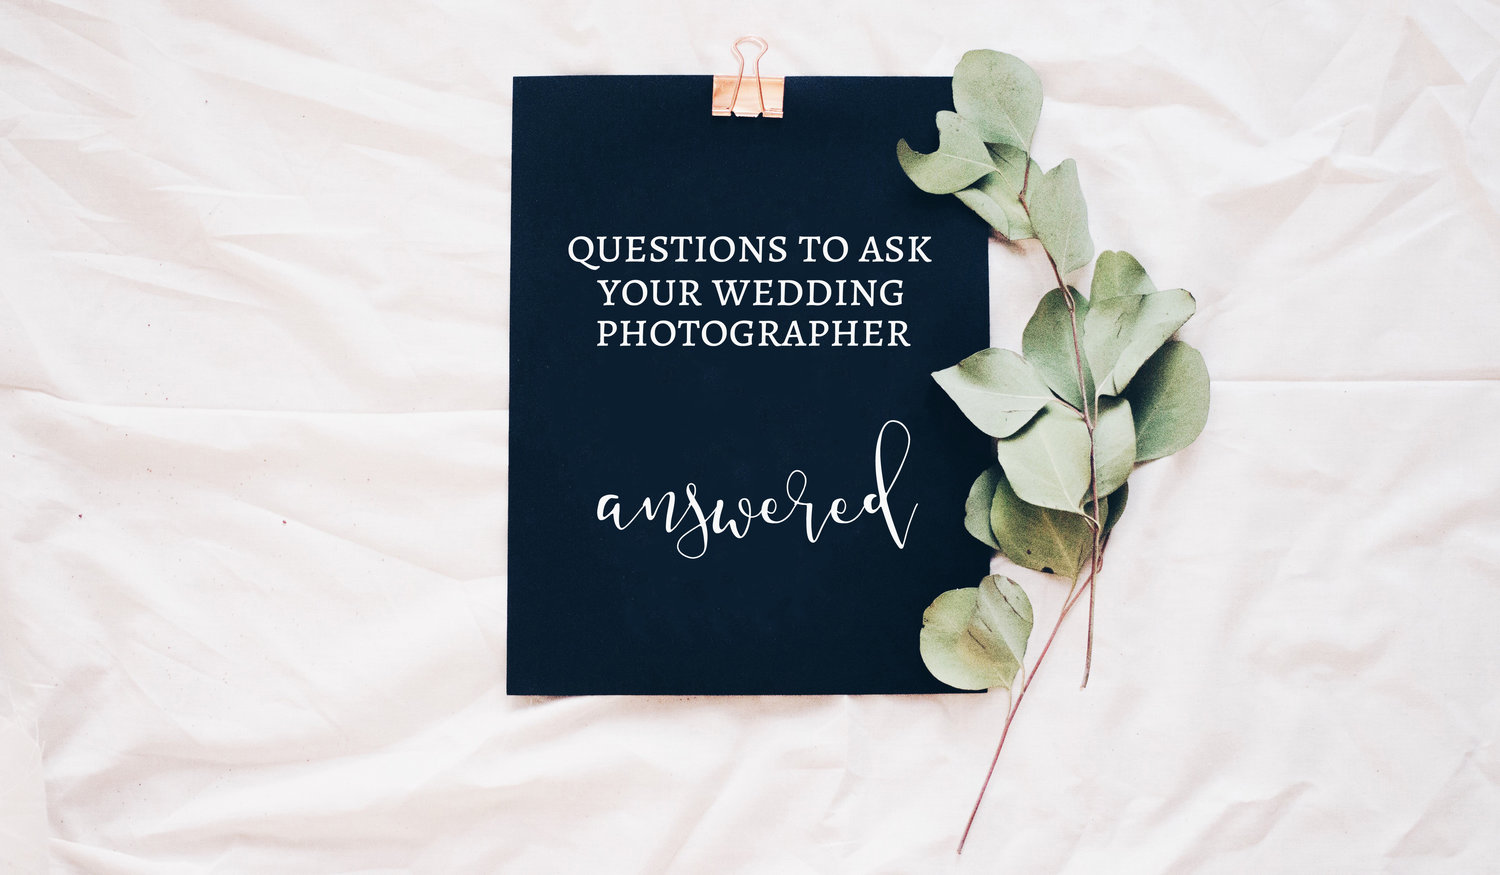 Questions To Ask Your Wedding Photographer.Questions To Ask Your Wedding Photographer Answered Savannah